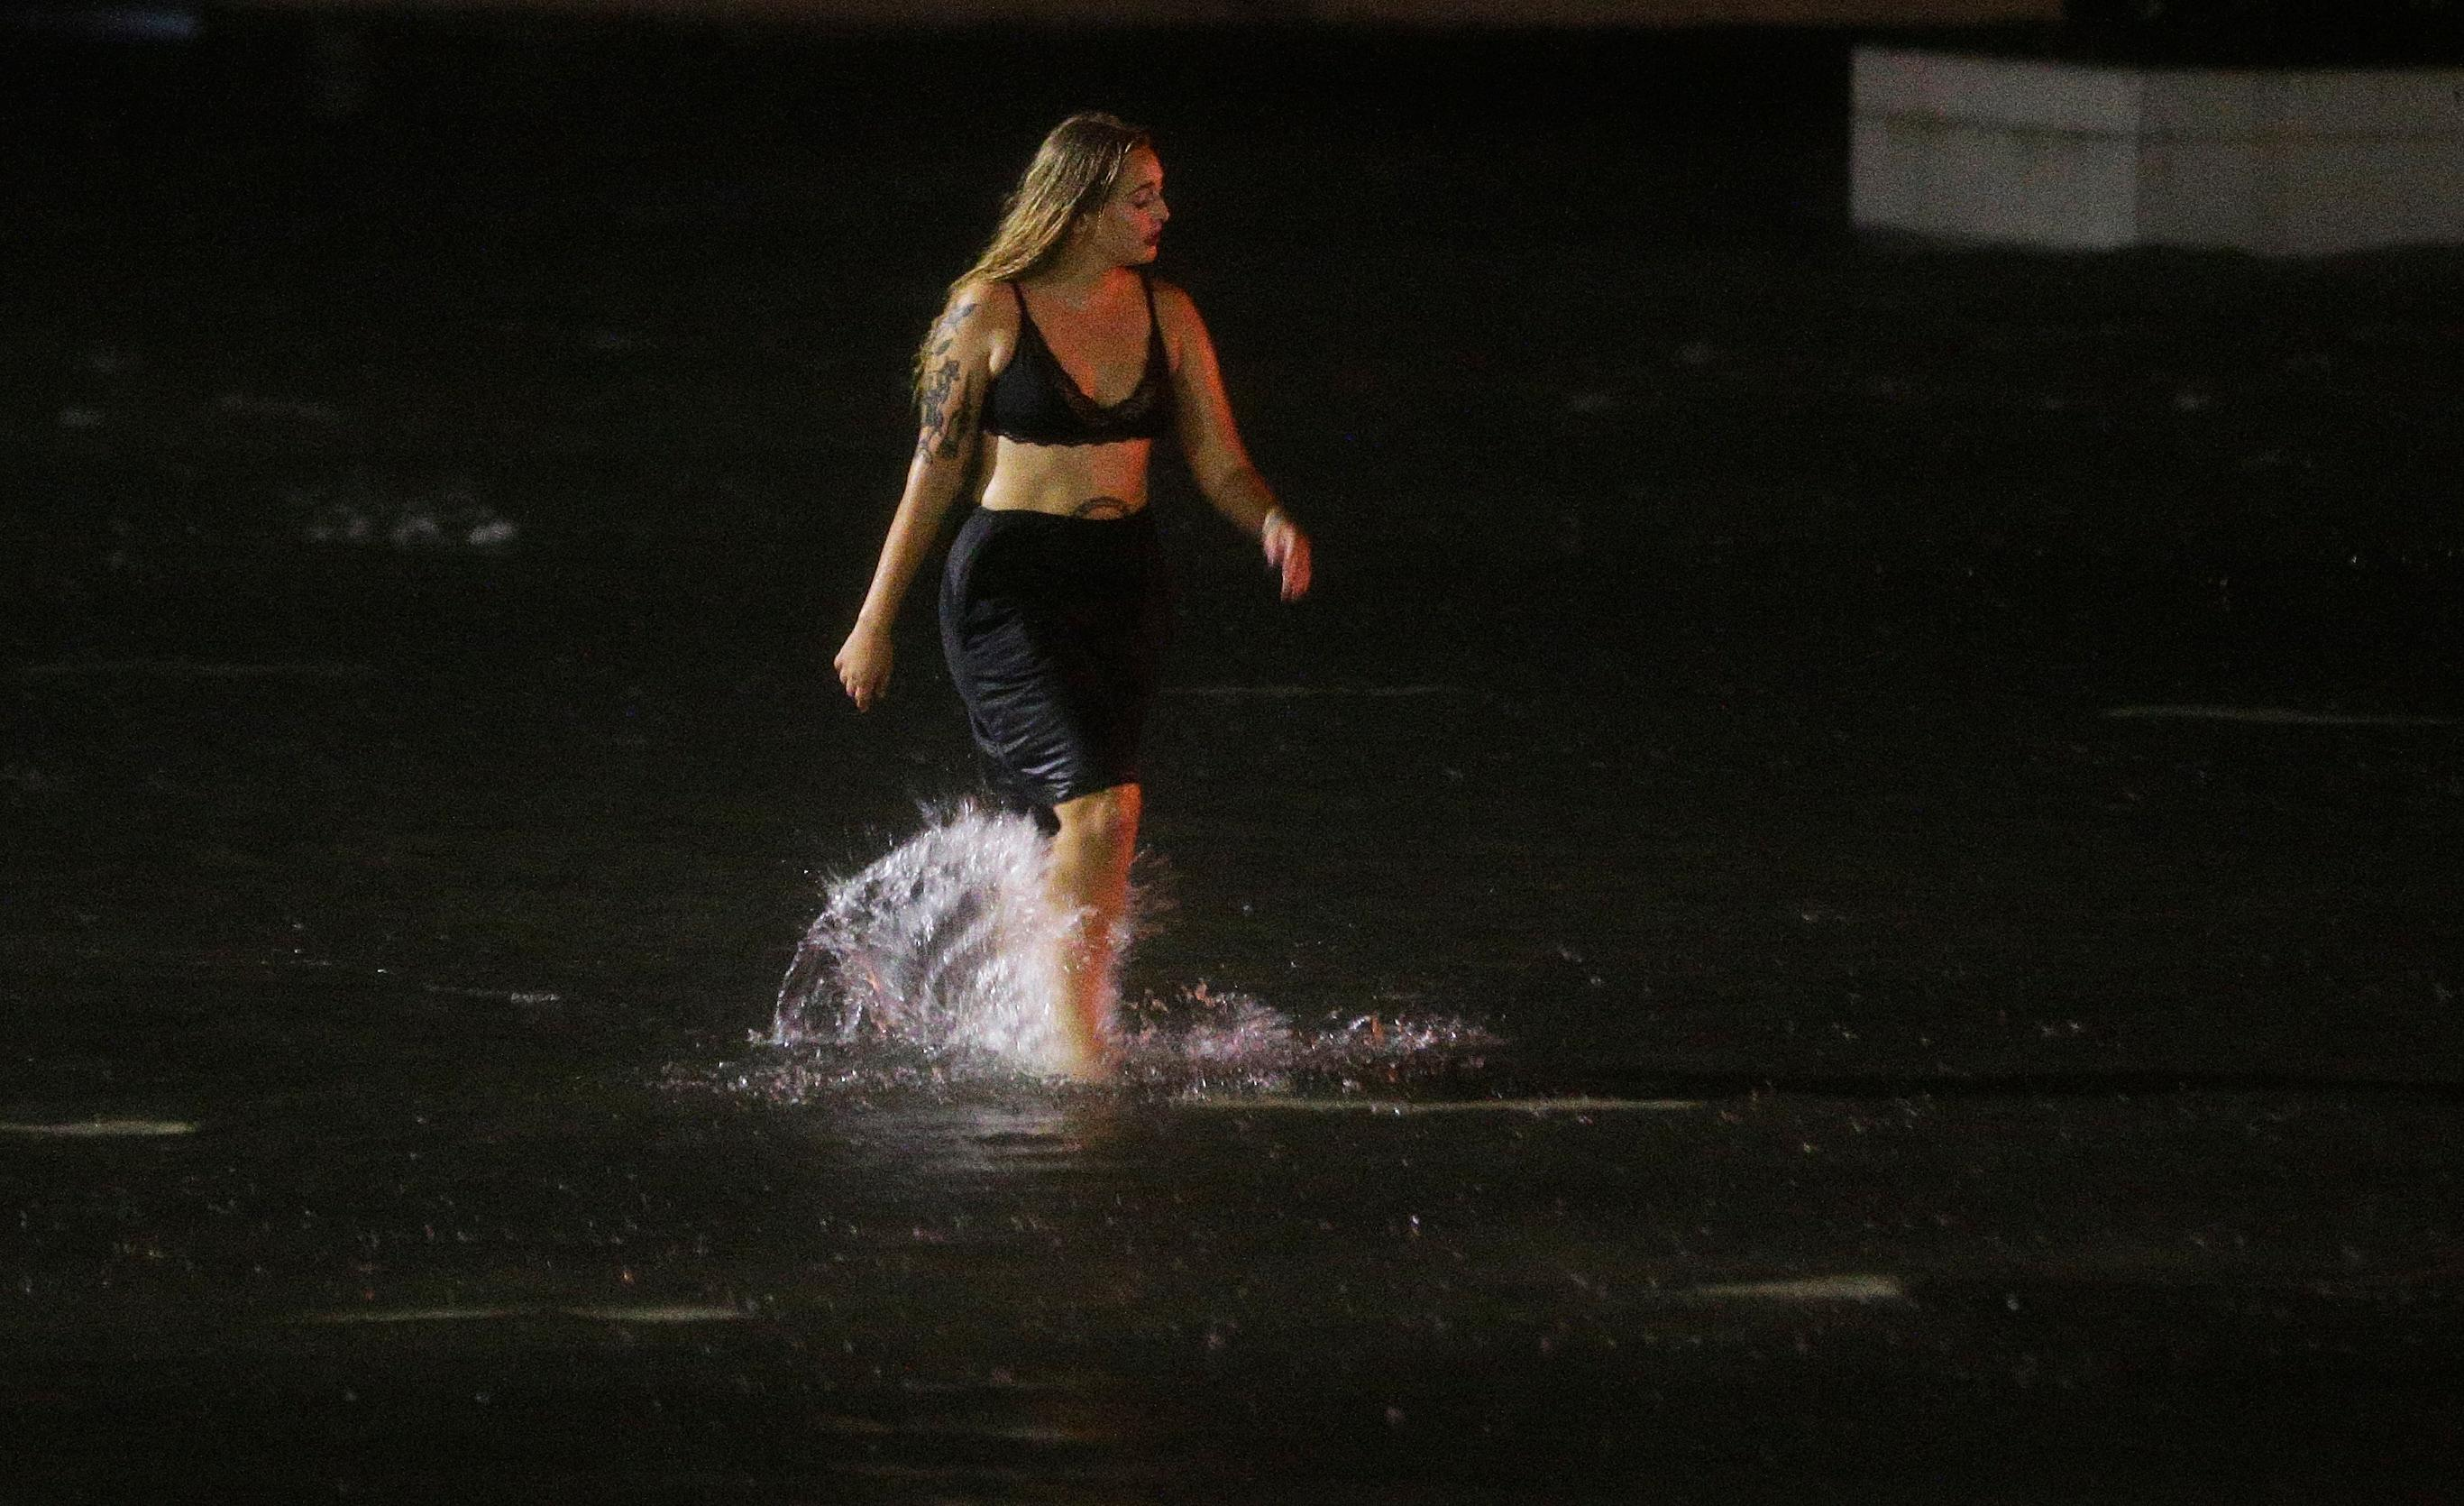 A woman wades through a flooded Water St. in downtown Mobile, Ala., during Hurricane Nate, Sunday, Oct. 8, 2017, in Mobile, Ala. (AP Photo/Brynn Anderson)